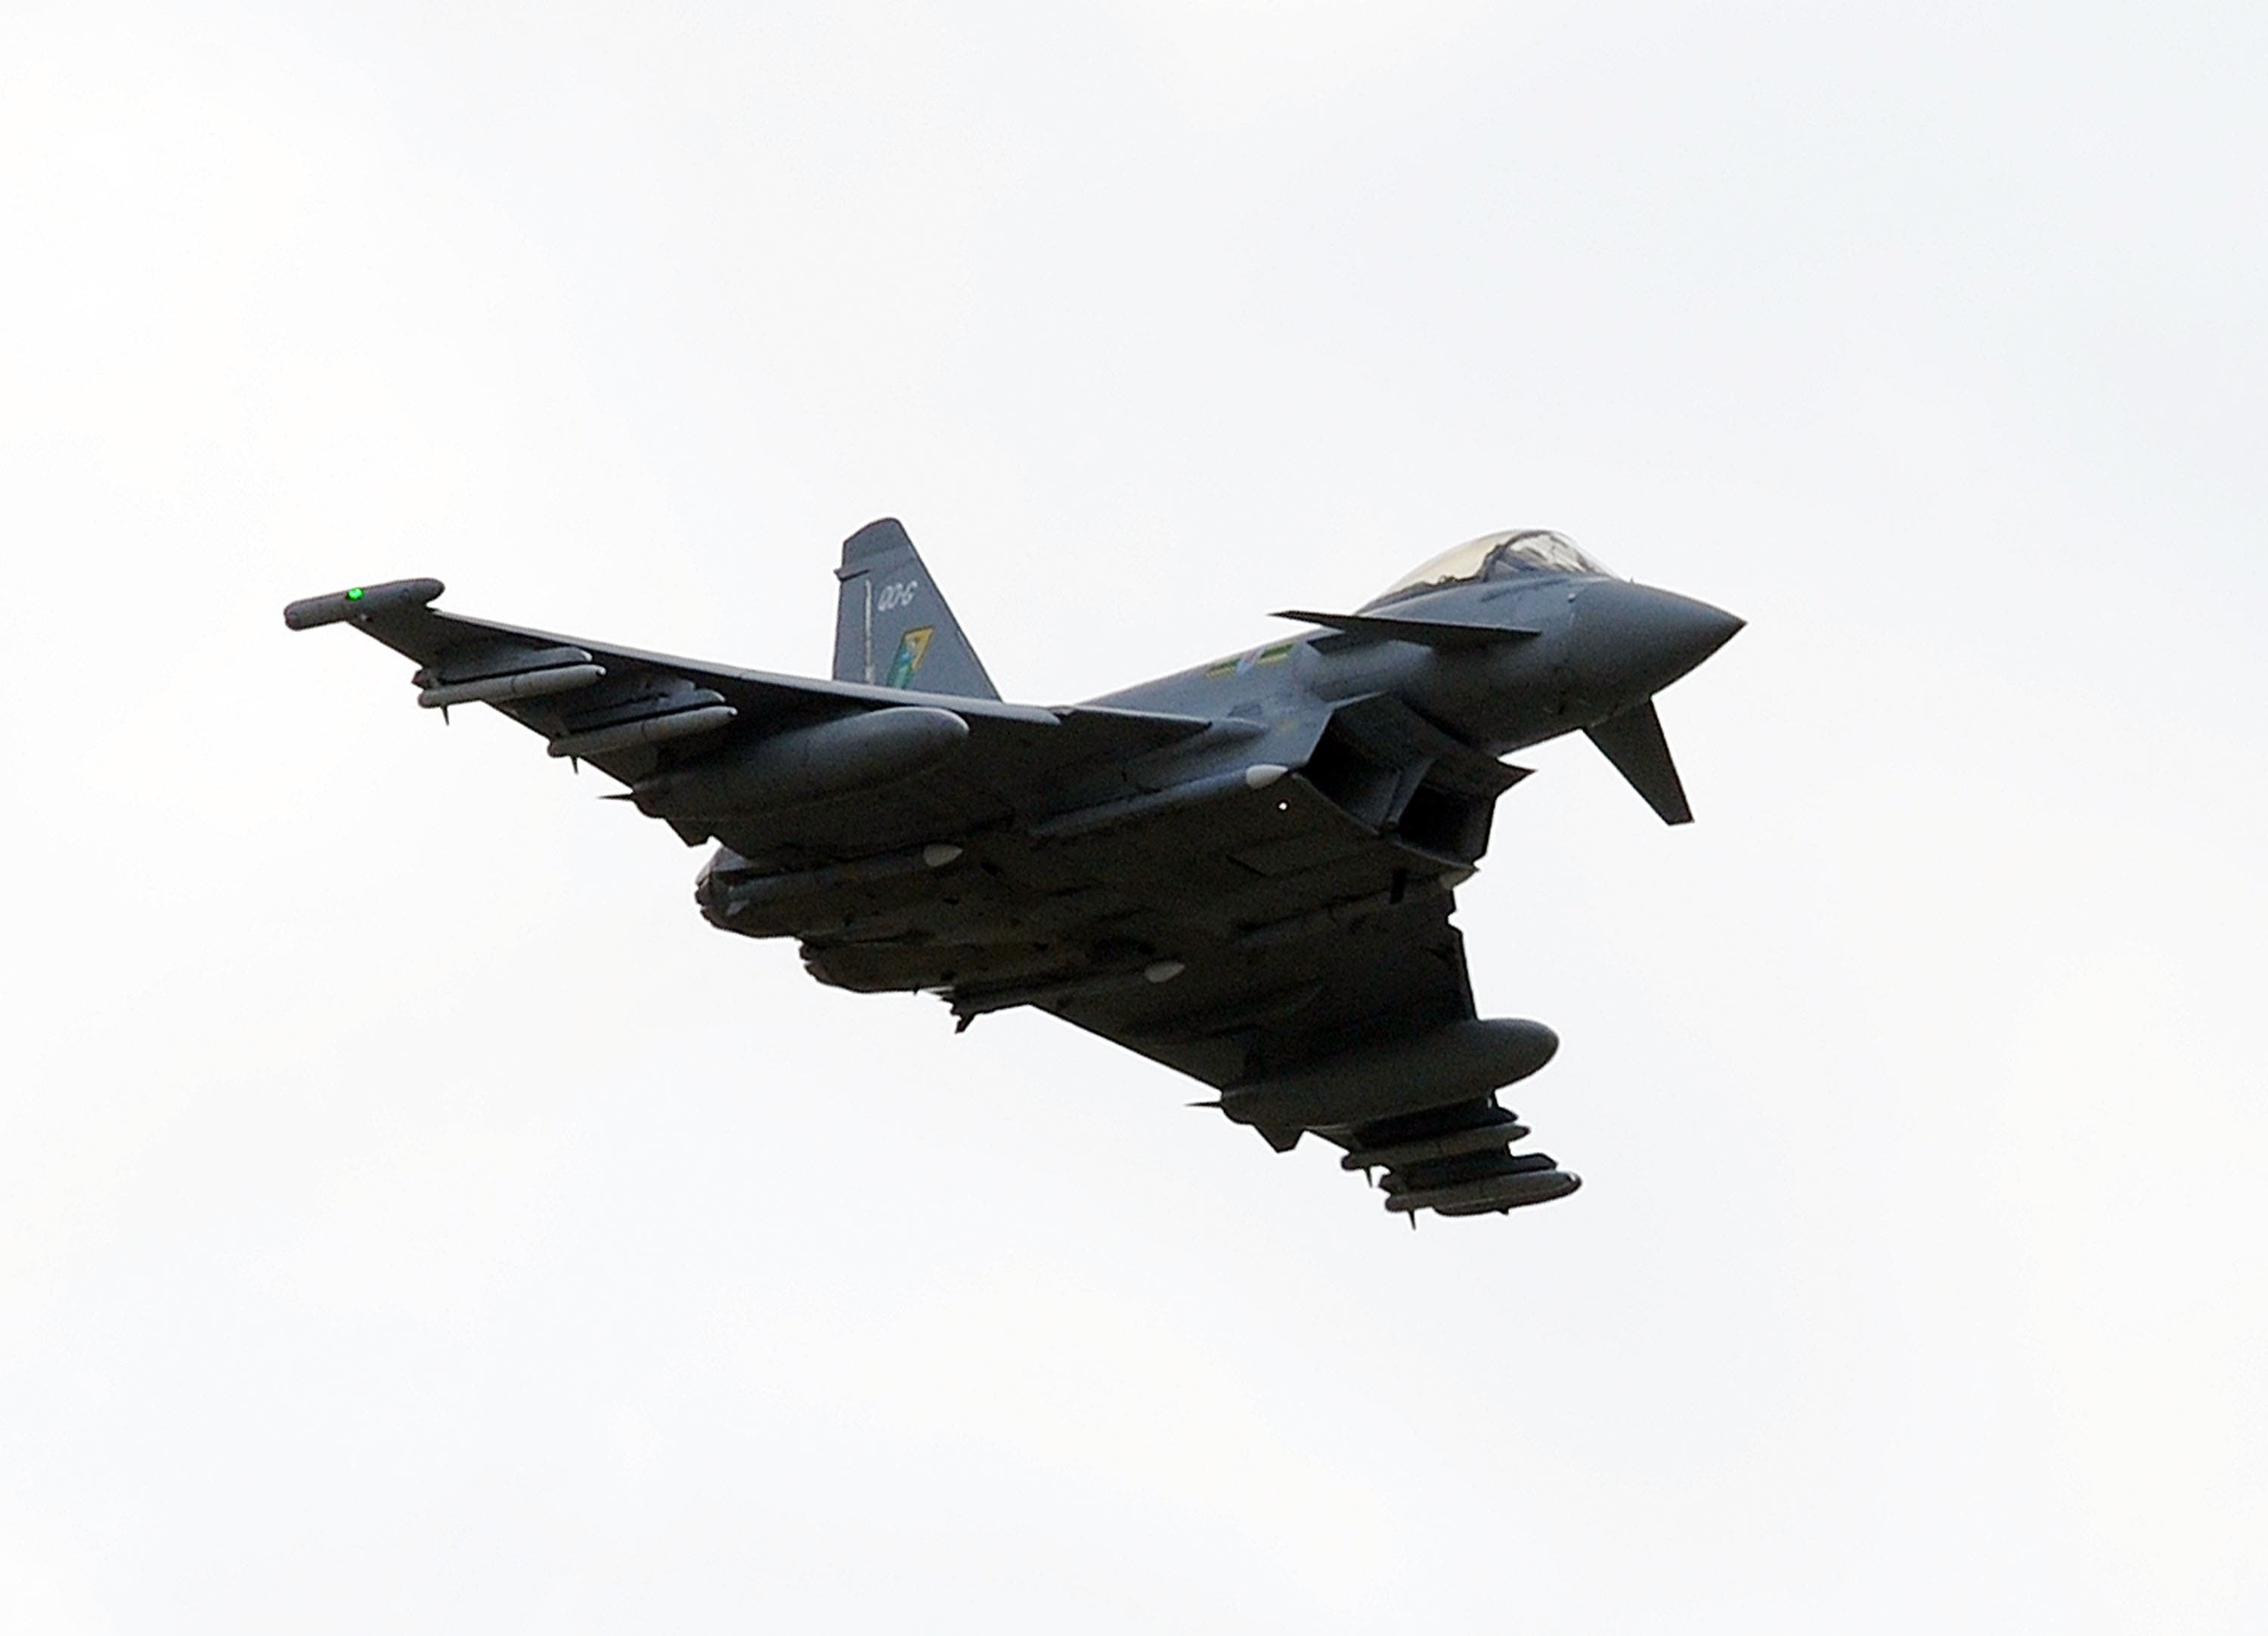 The UAE and the UK are in talks over the Typhoon fighter jet, which could see the Emirate buy 40 of the aircraft